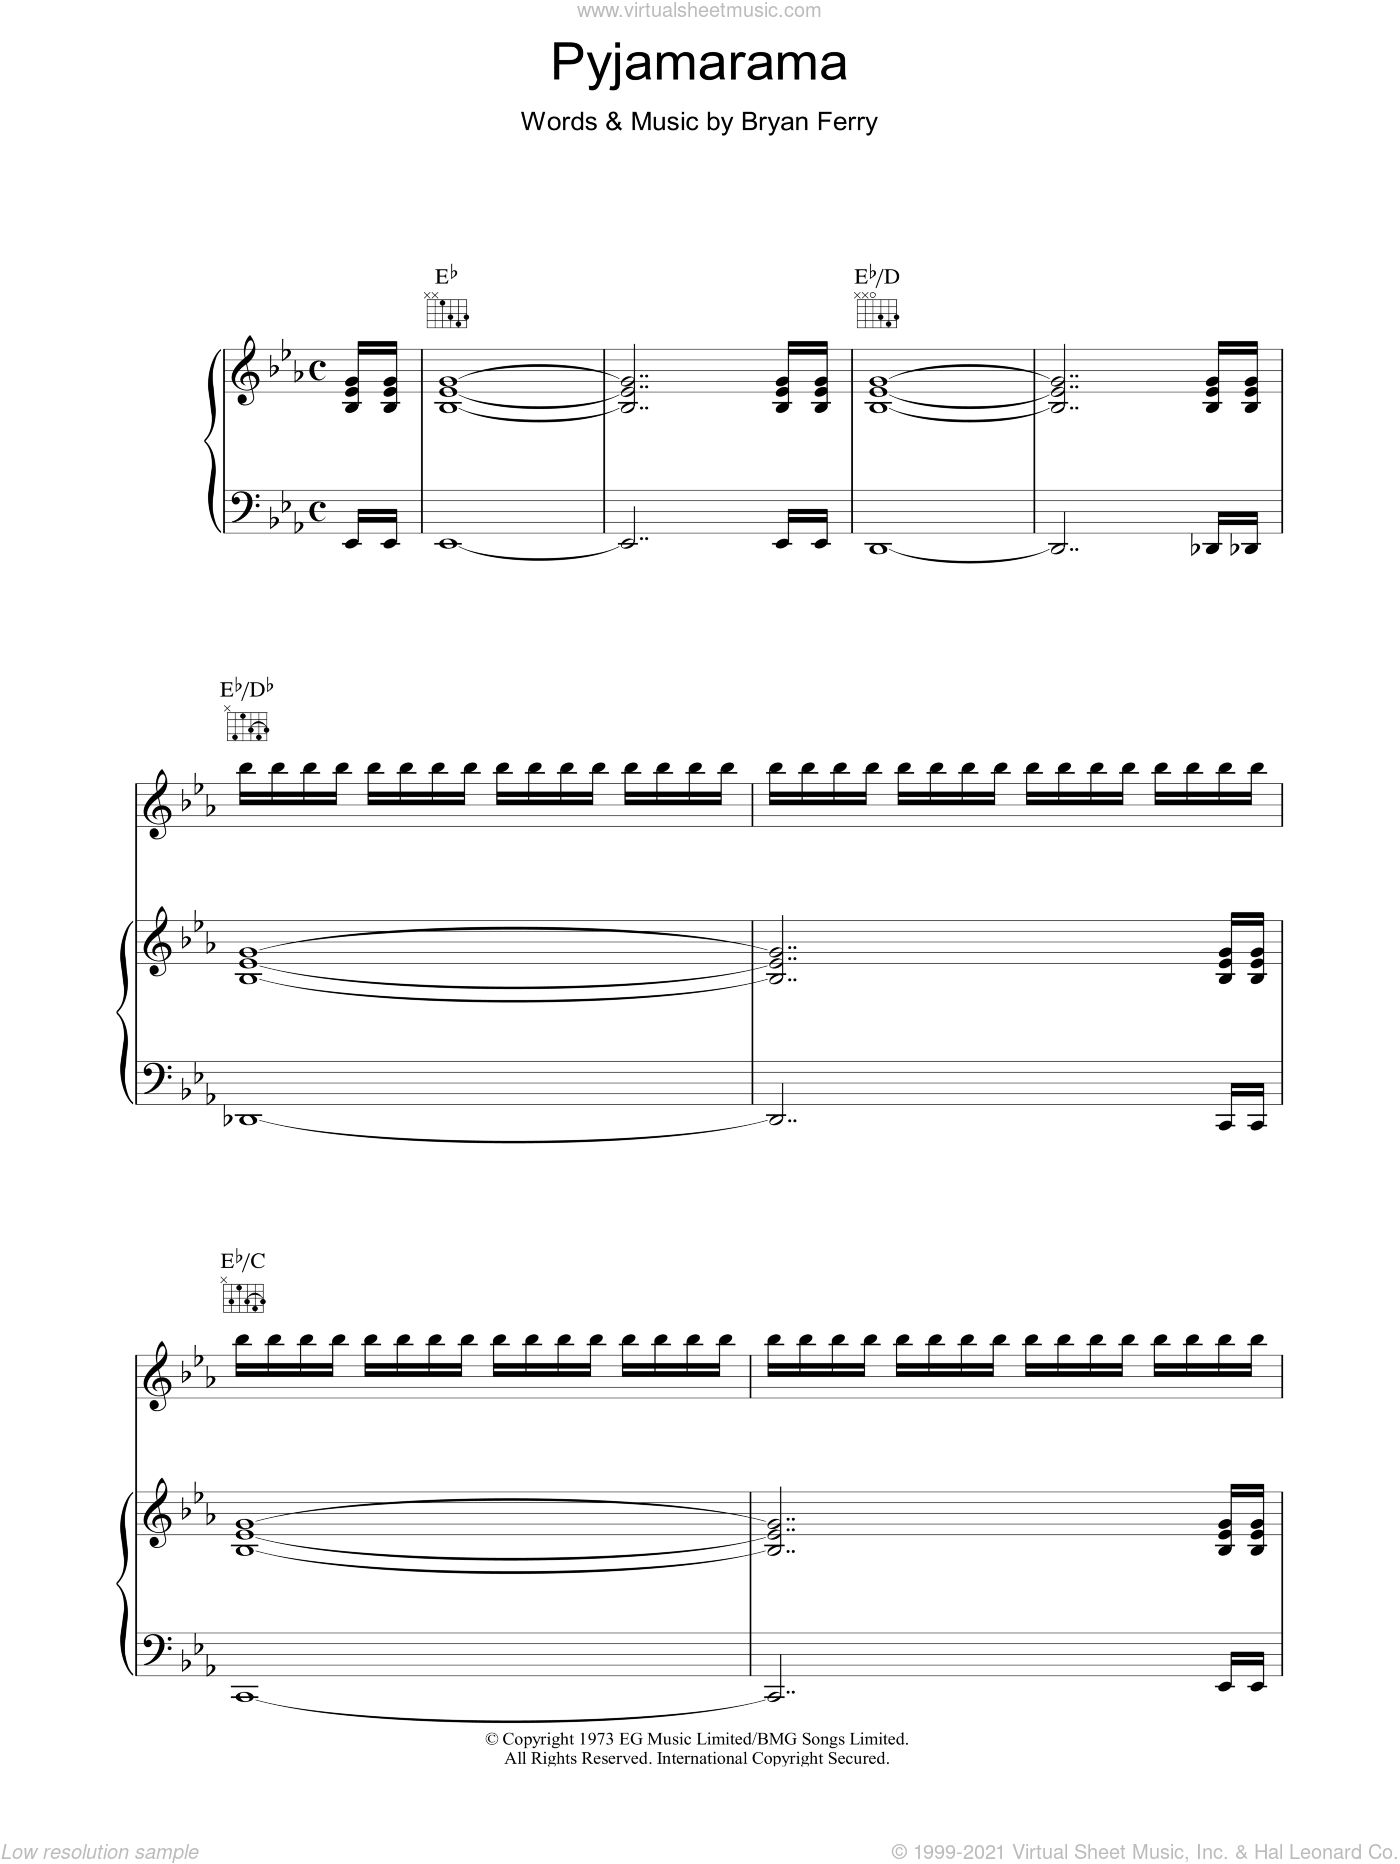 Pyjamarama sheet music for voice, piano or guitar by Bryan Ferry